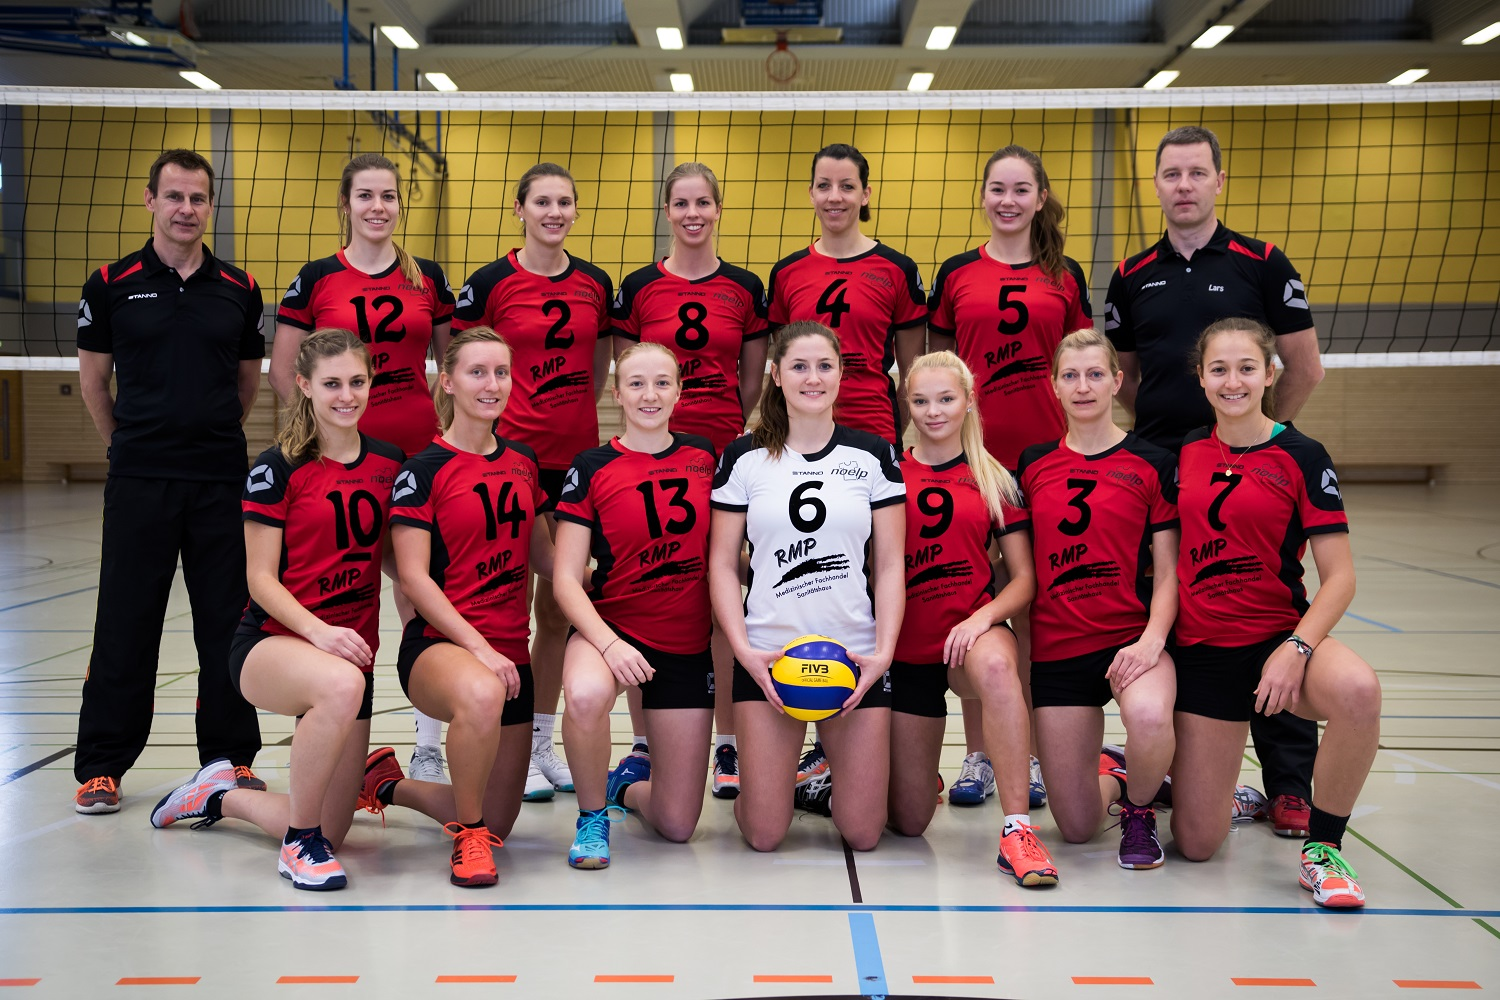 Volleyballerinnen im Favoritenkreis etabliert